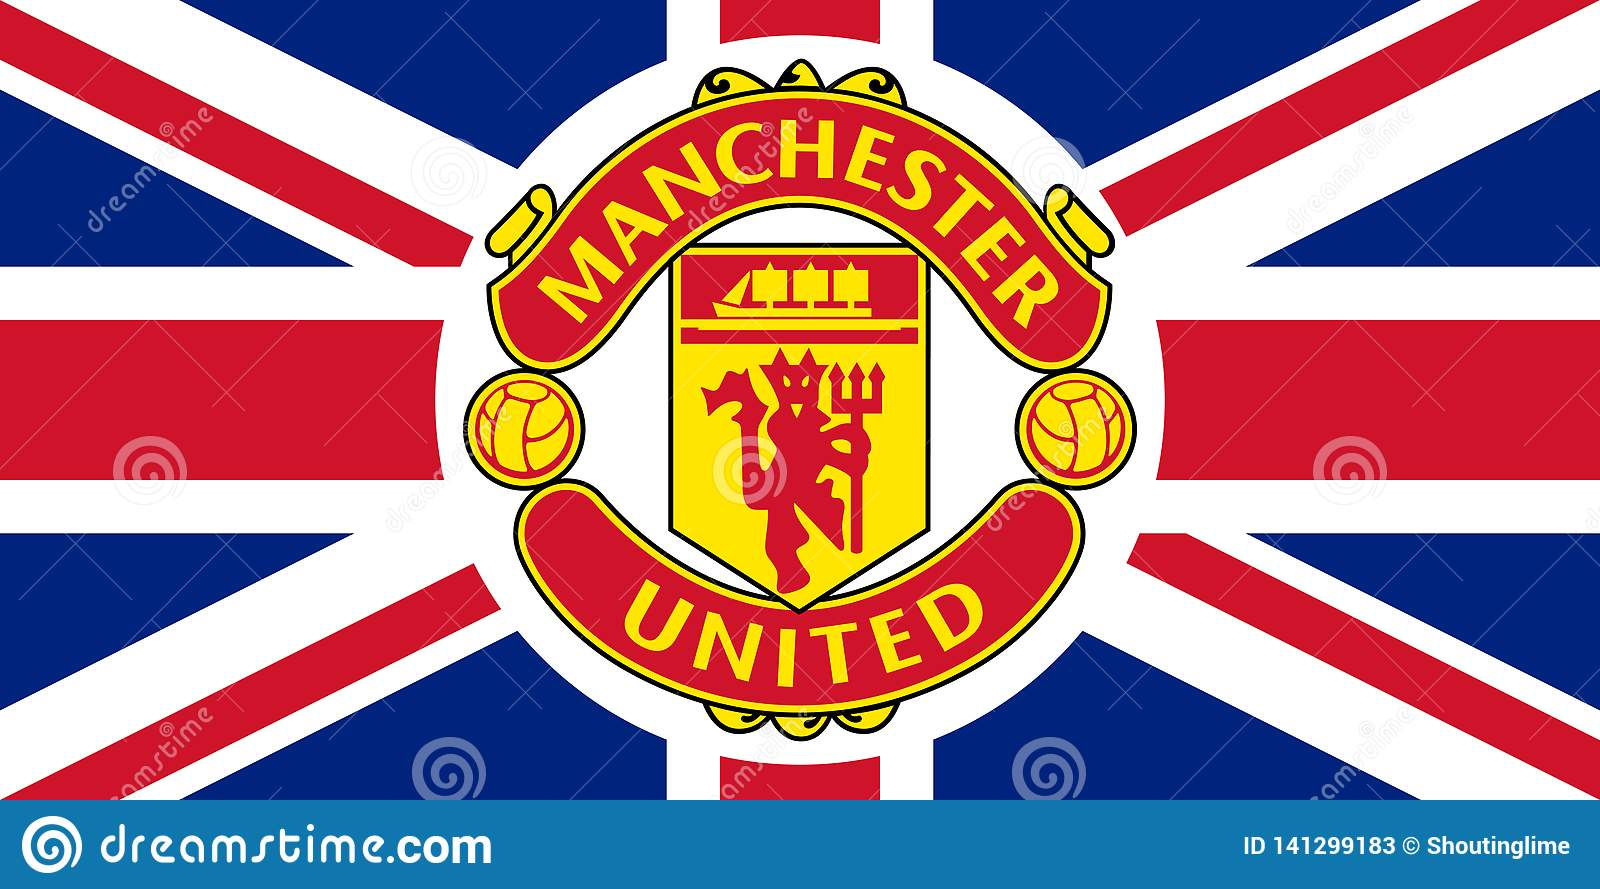 Download Manchester United Kingdom Flag